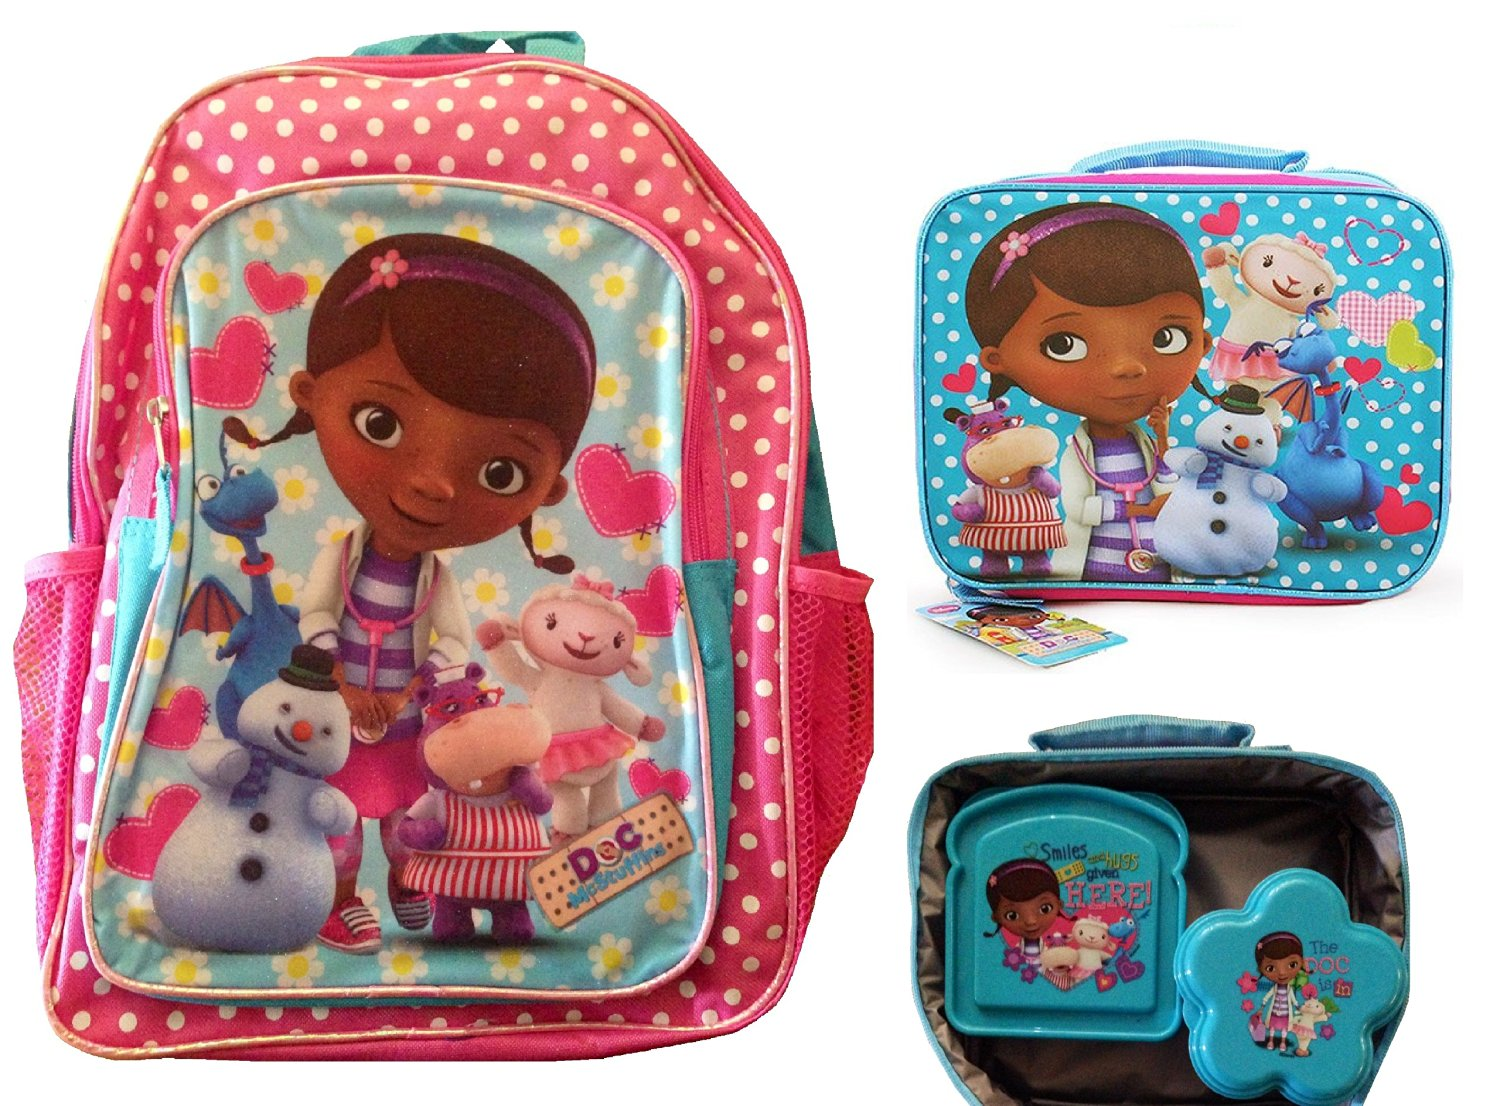 Doc Mcstuffins School Backpack with Lunch Bag, Sandwich Container and Flower Snack and Store